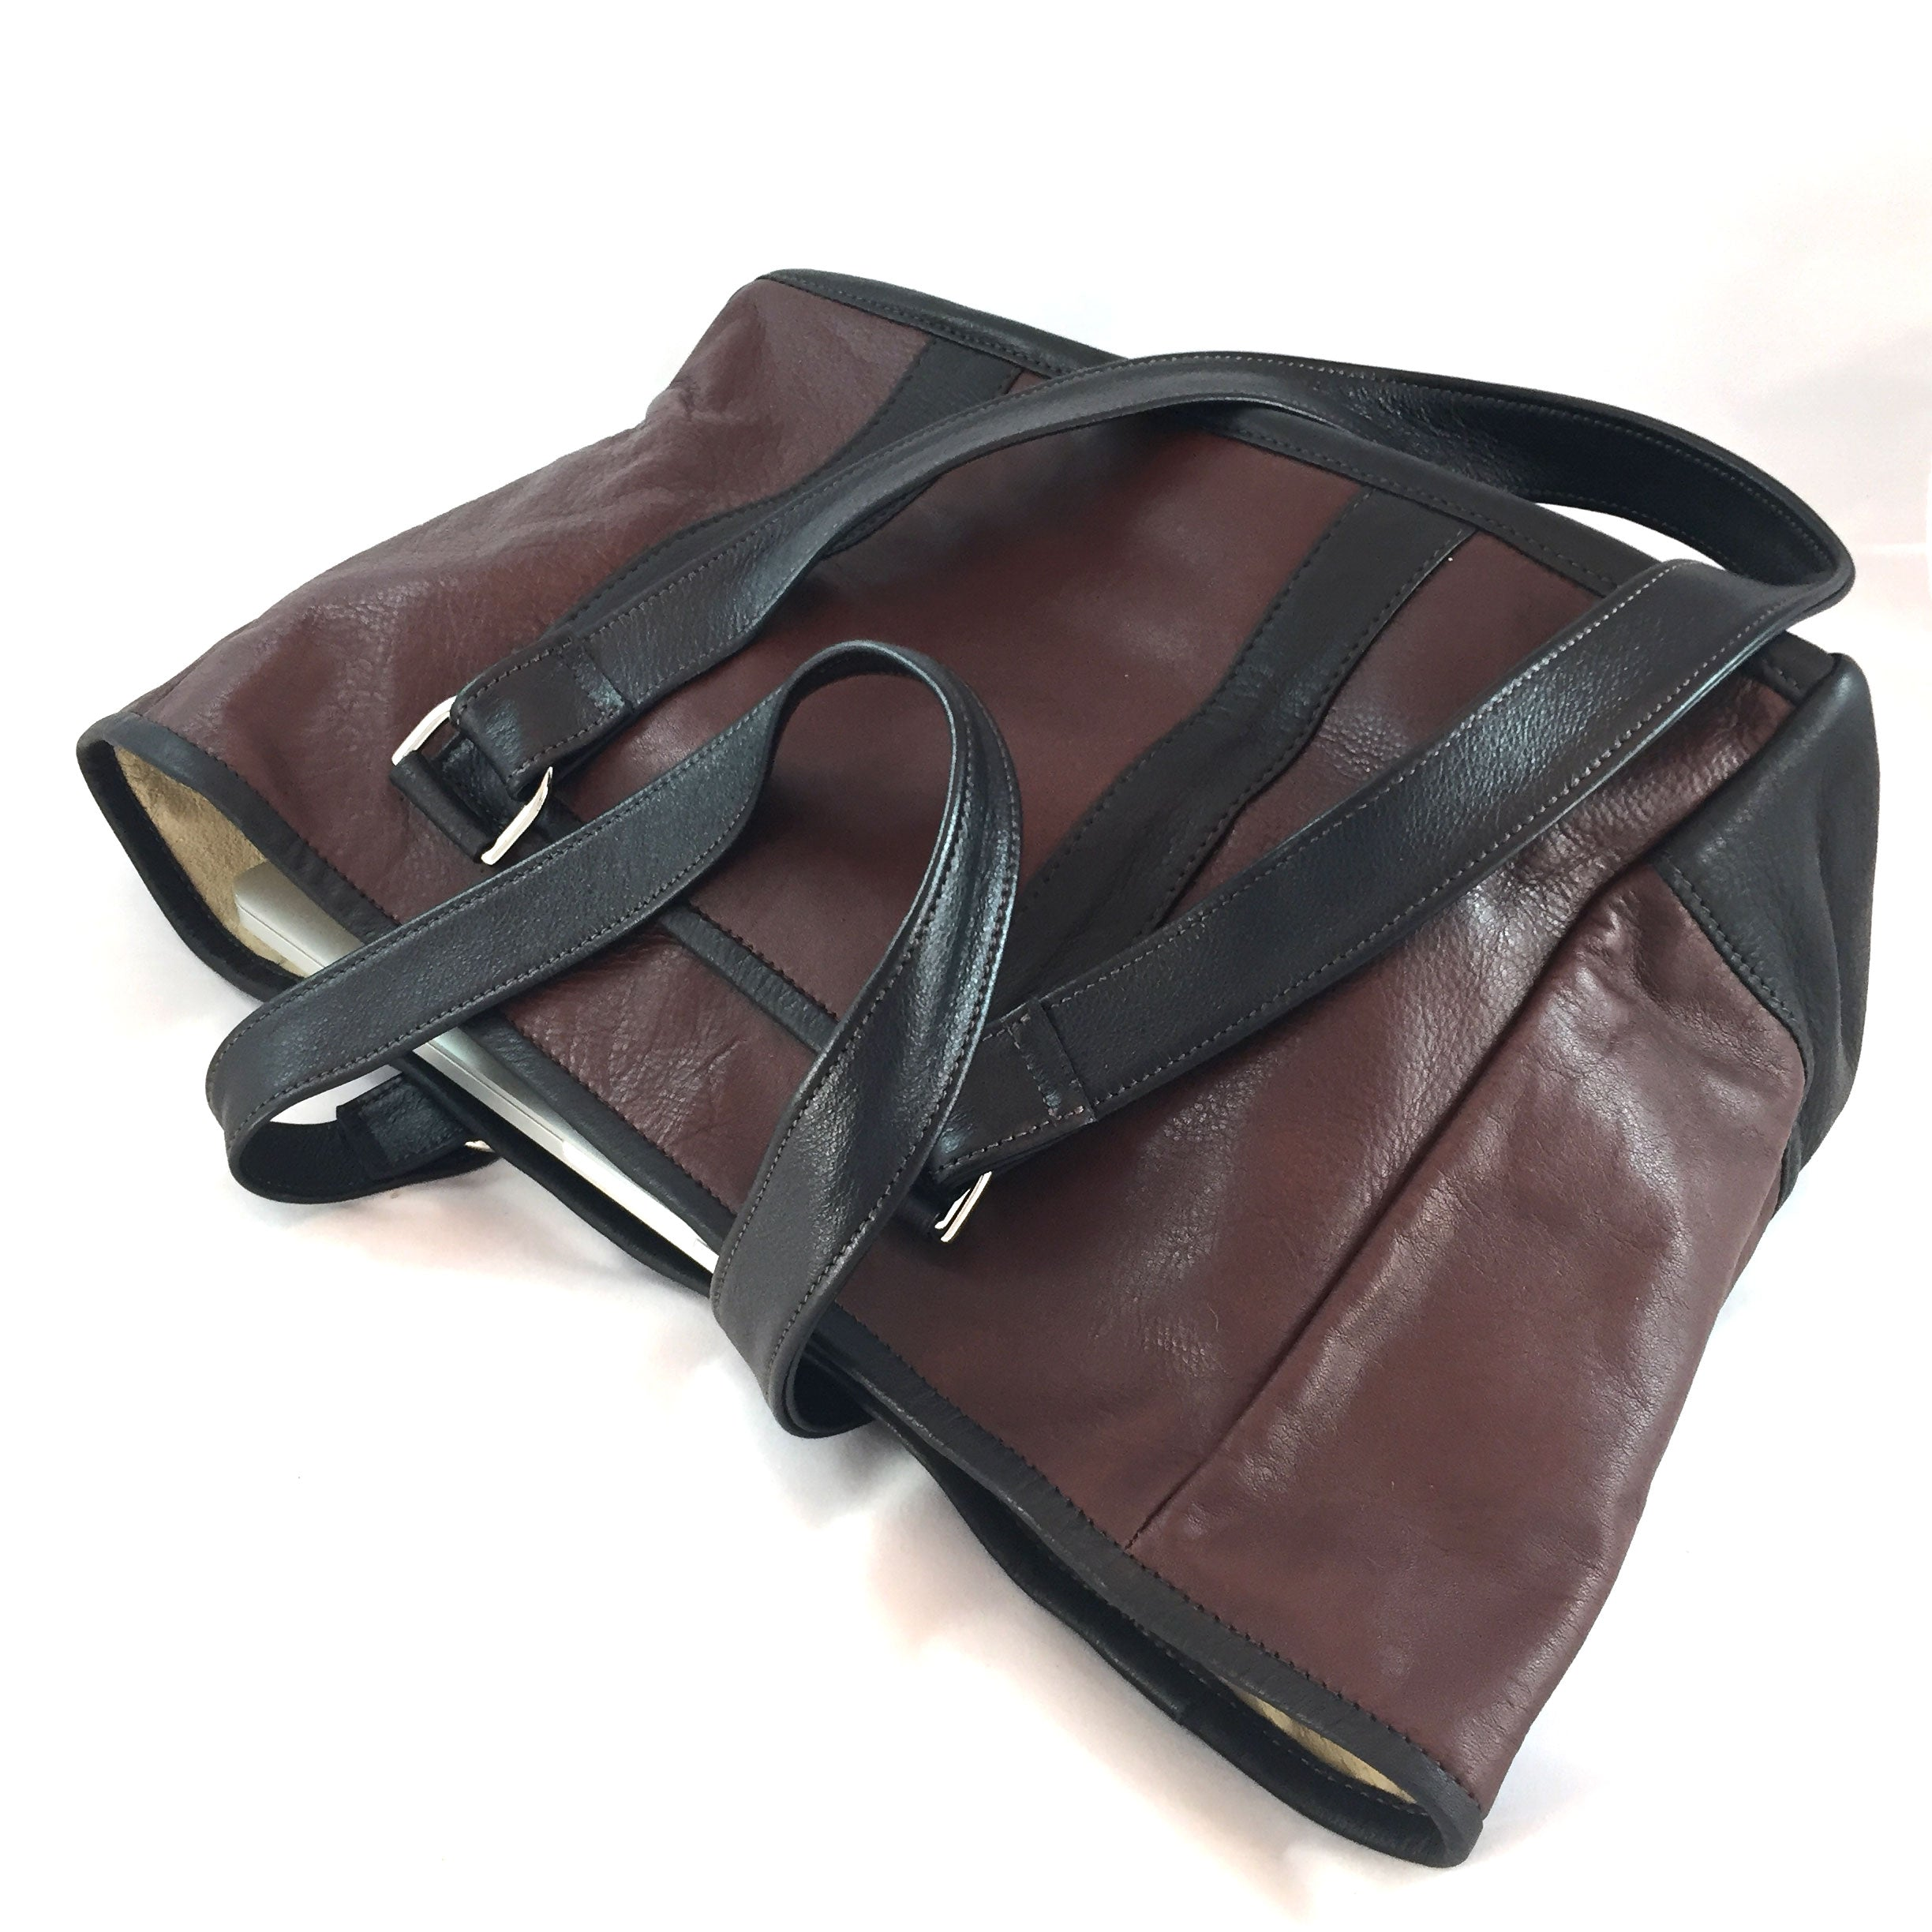 Knight Leather Tote Bag Side Brown w Dark Brown Accent 6967-BRDB